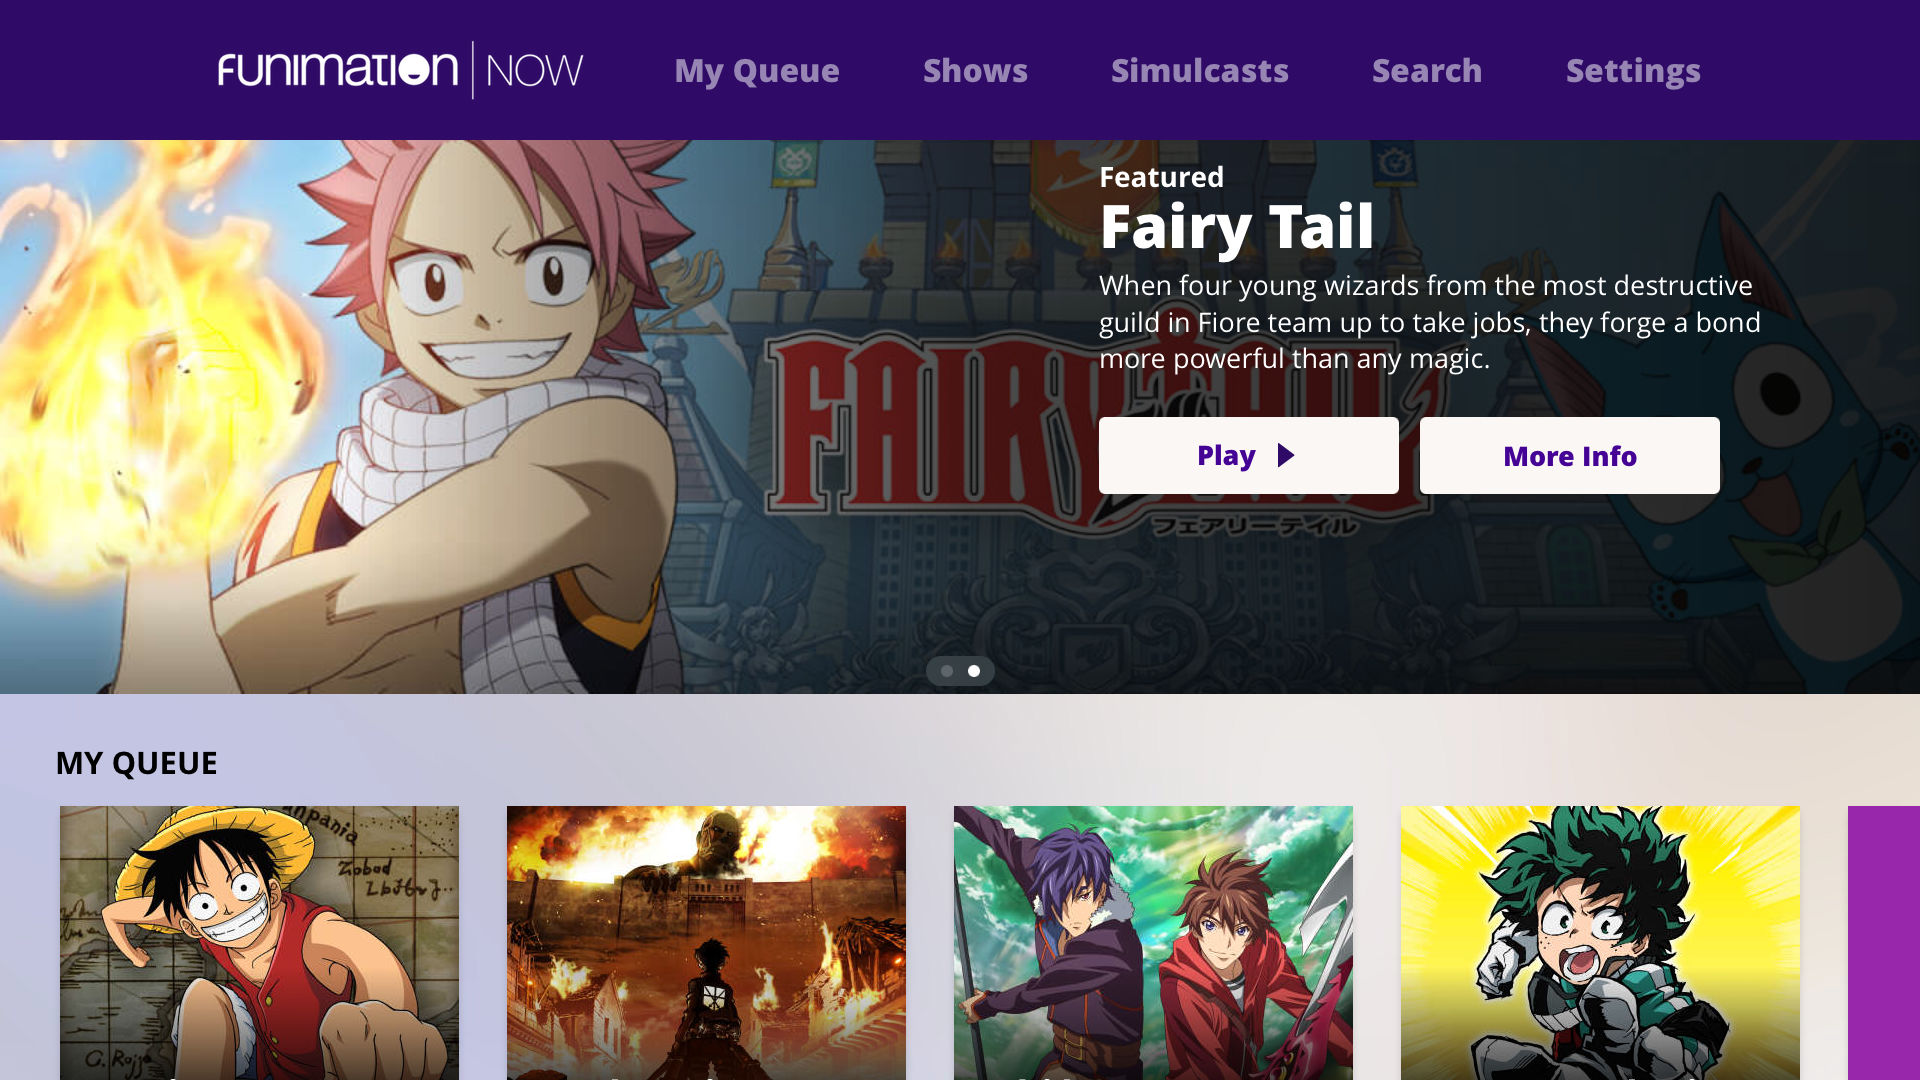 New Apps Incoming! - Funimation - Blog!